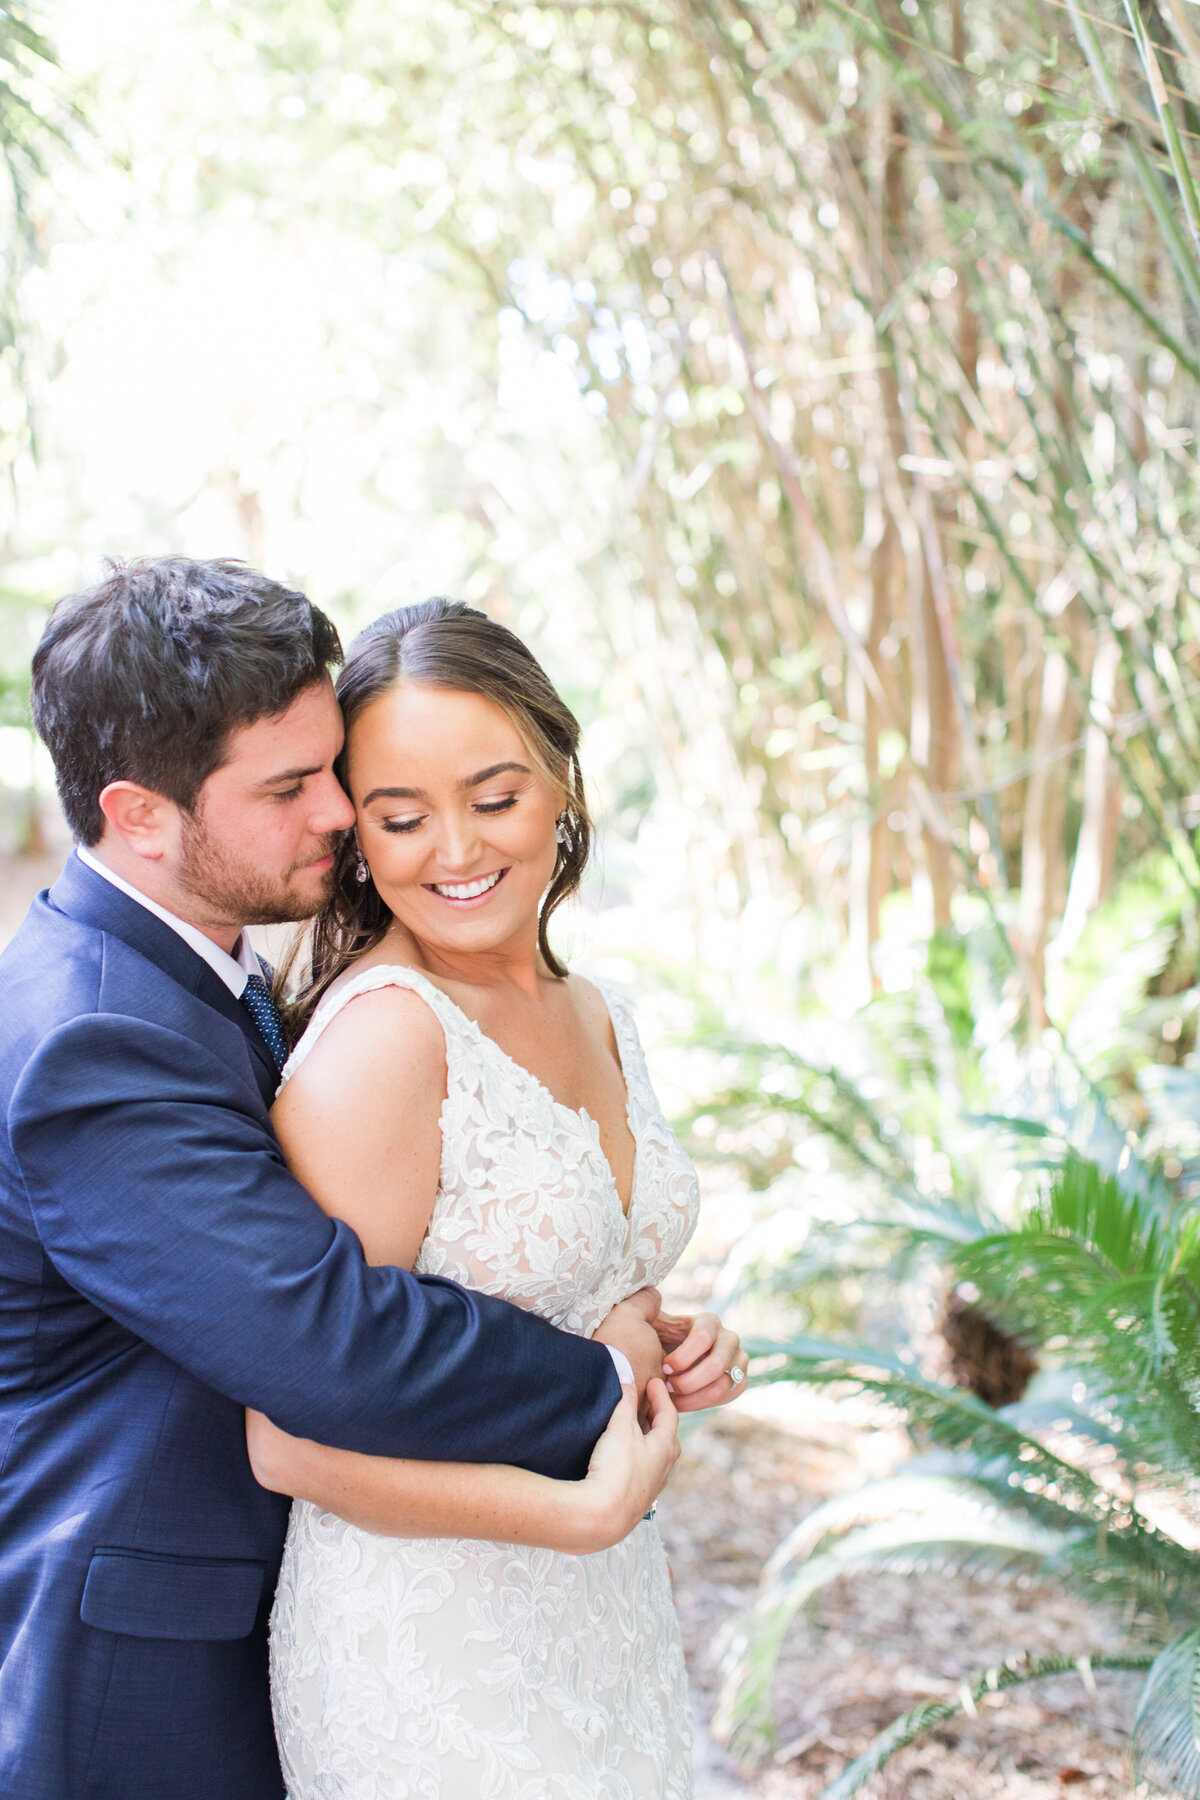 Hannah and Alex - Charleston Harbor Resort & Marina - Bride and Groom 2 - 027